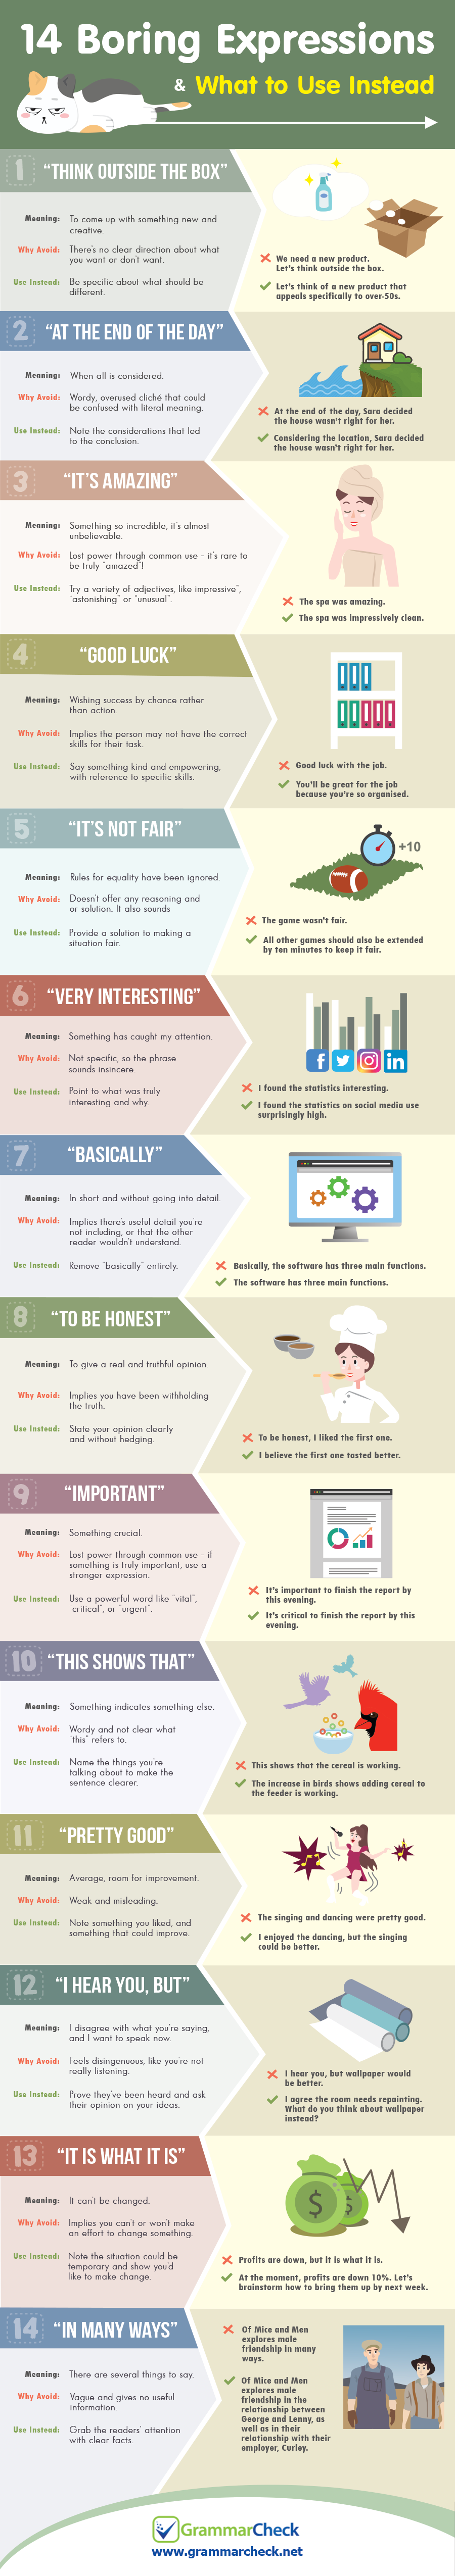 14 Boring Expressions & What to Use Instead (Infographic)